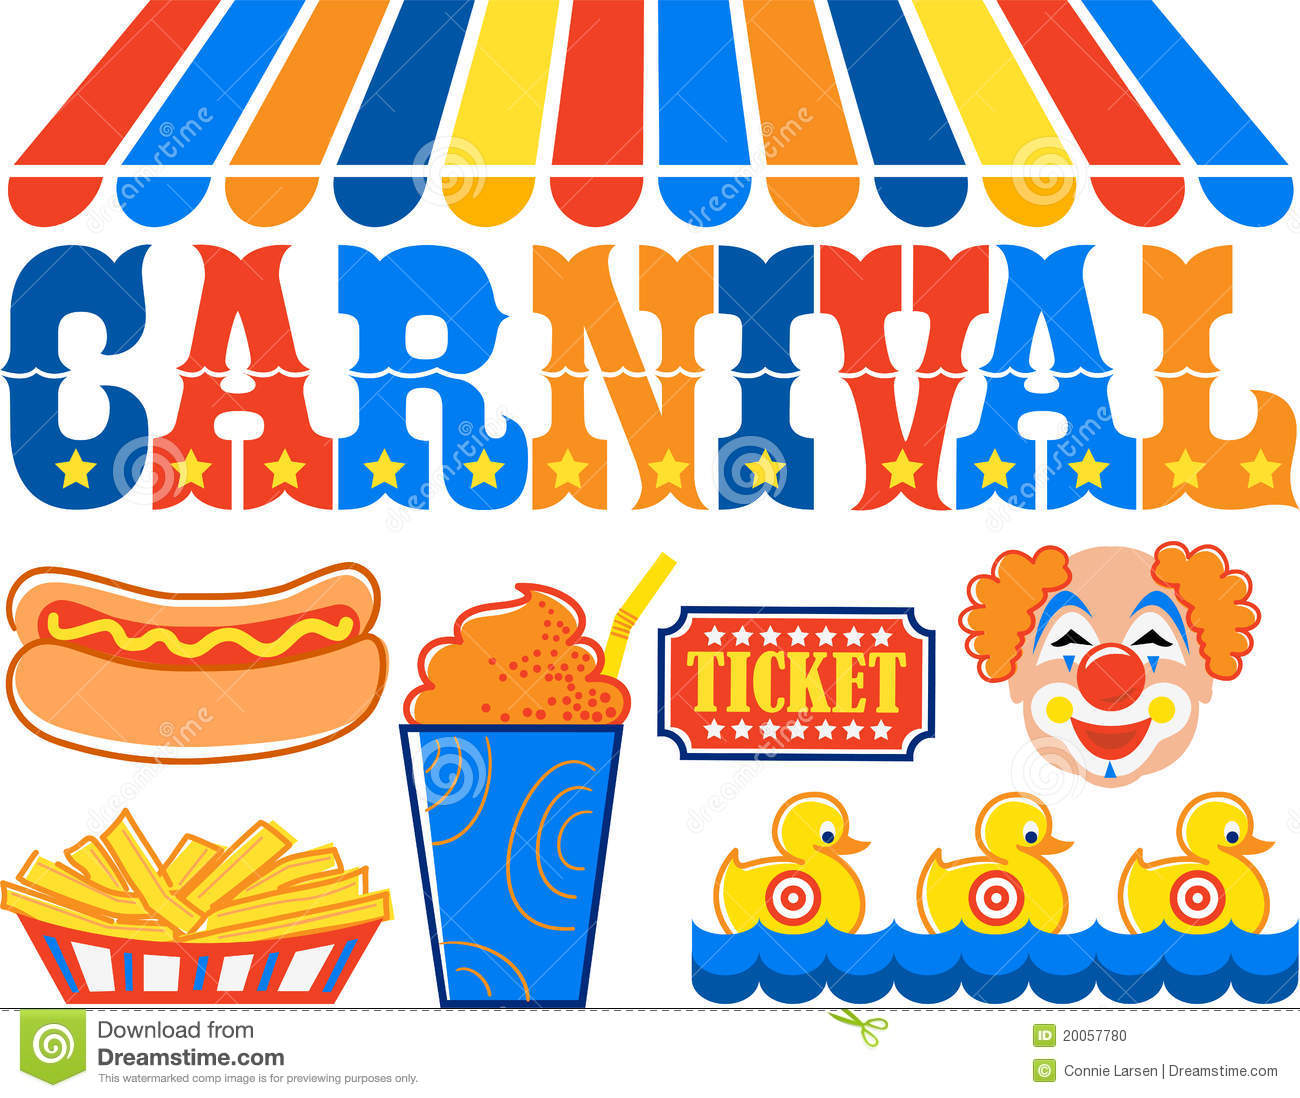 Carnival Clipart/eps Stock Photo-Carnival Clipart/eps Stock Photo-5